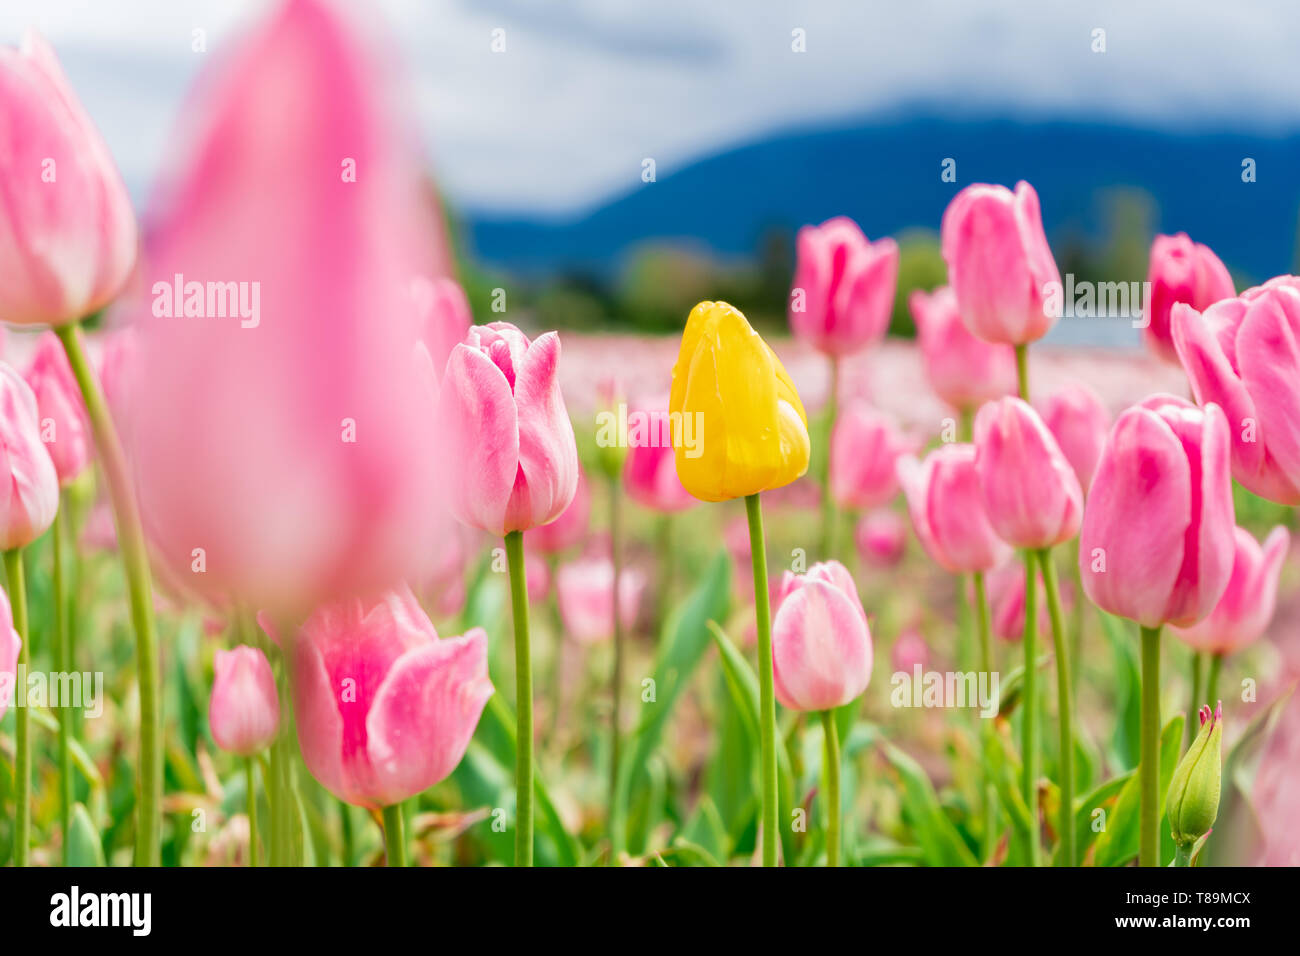 Yellow tulip in a field among pink and white tulips - one different flower. On a flower farm, tourist attraction. Stock Photo